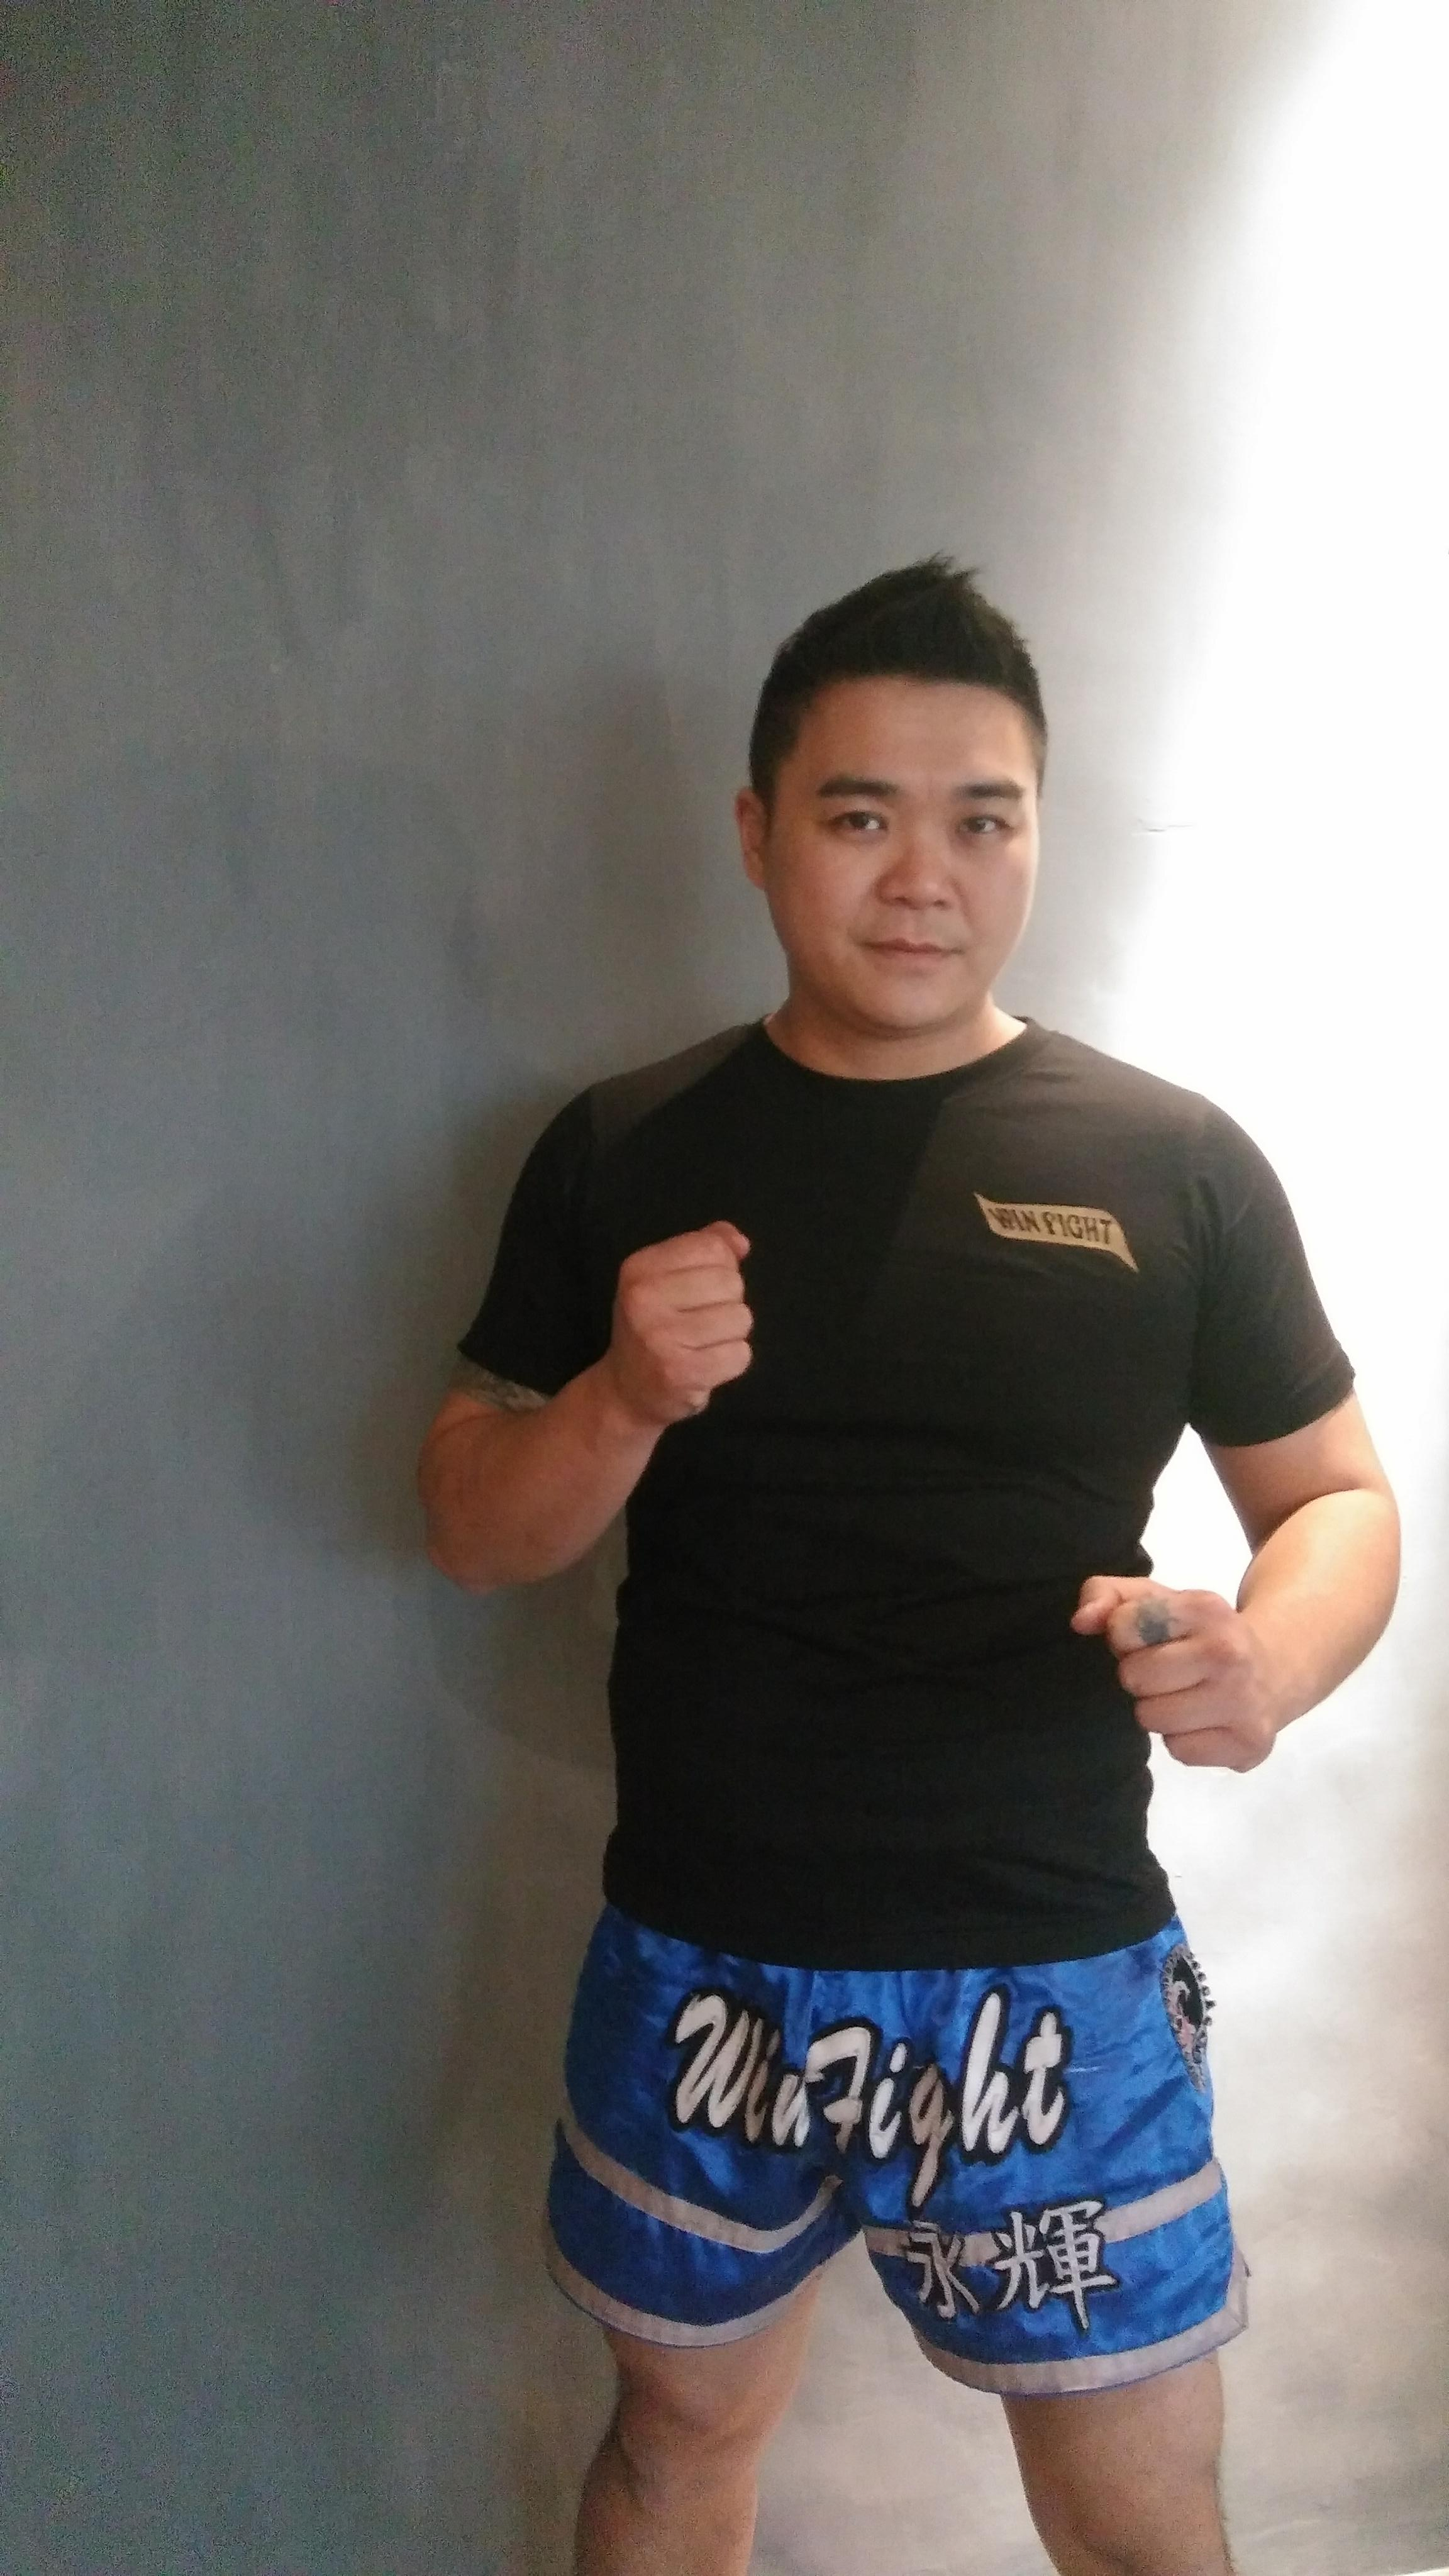 WIN FIGHT Boxing Gym